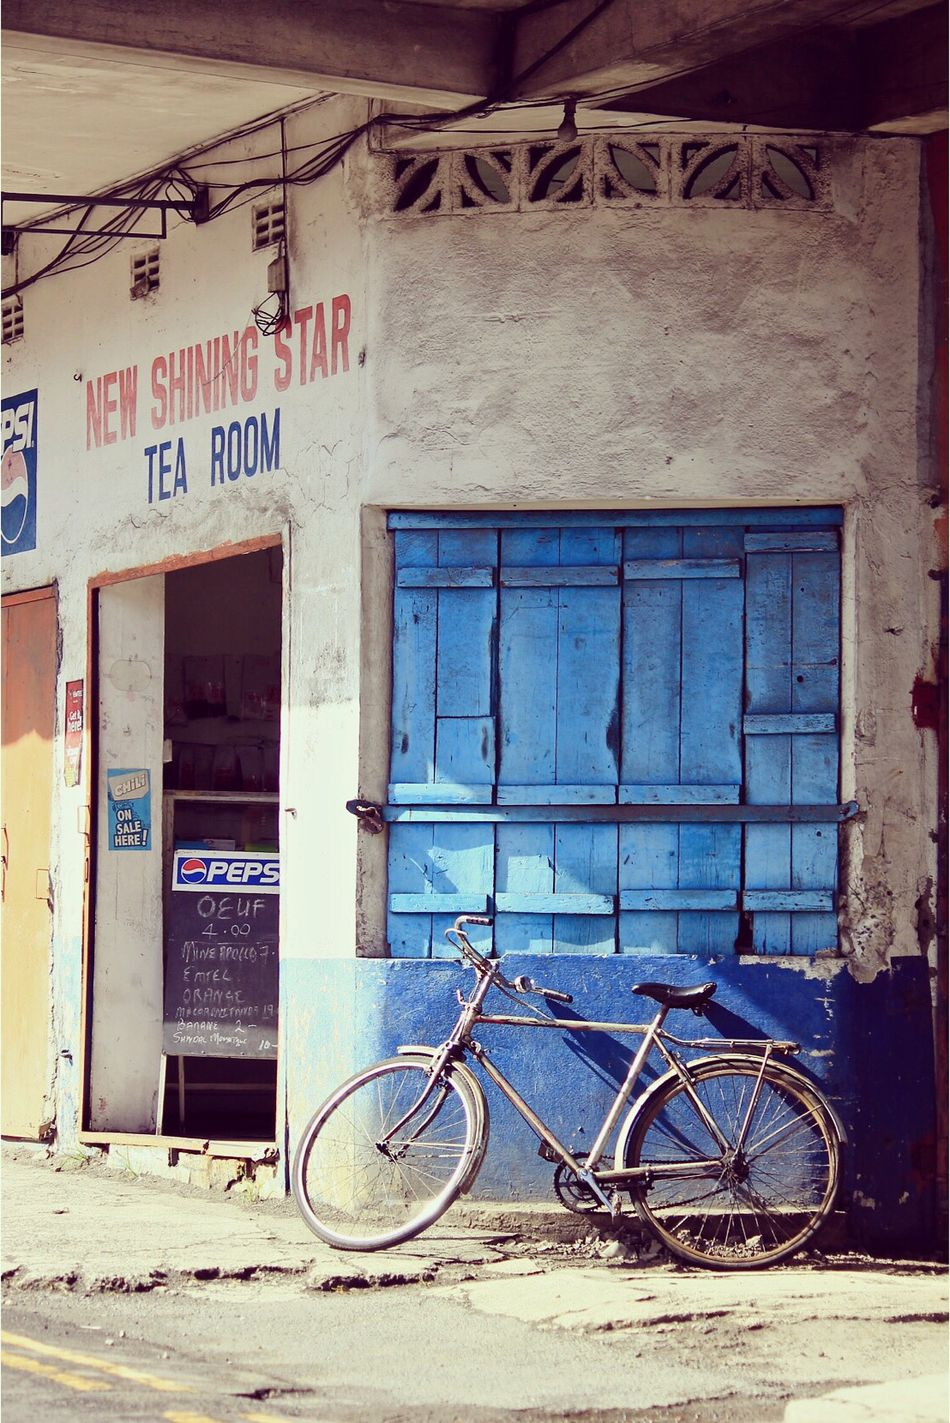 New Shining Star Streetphotography Streetphoto_color Bike Blue Dailylife Travel Photography Travel Diary Mauritius